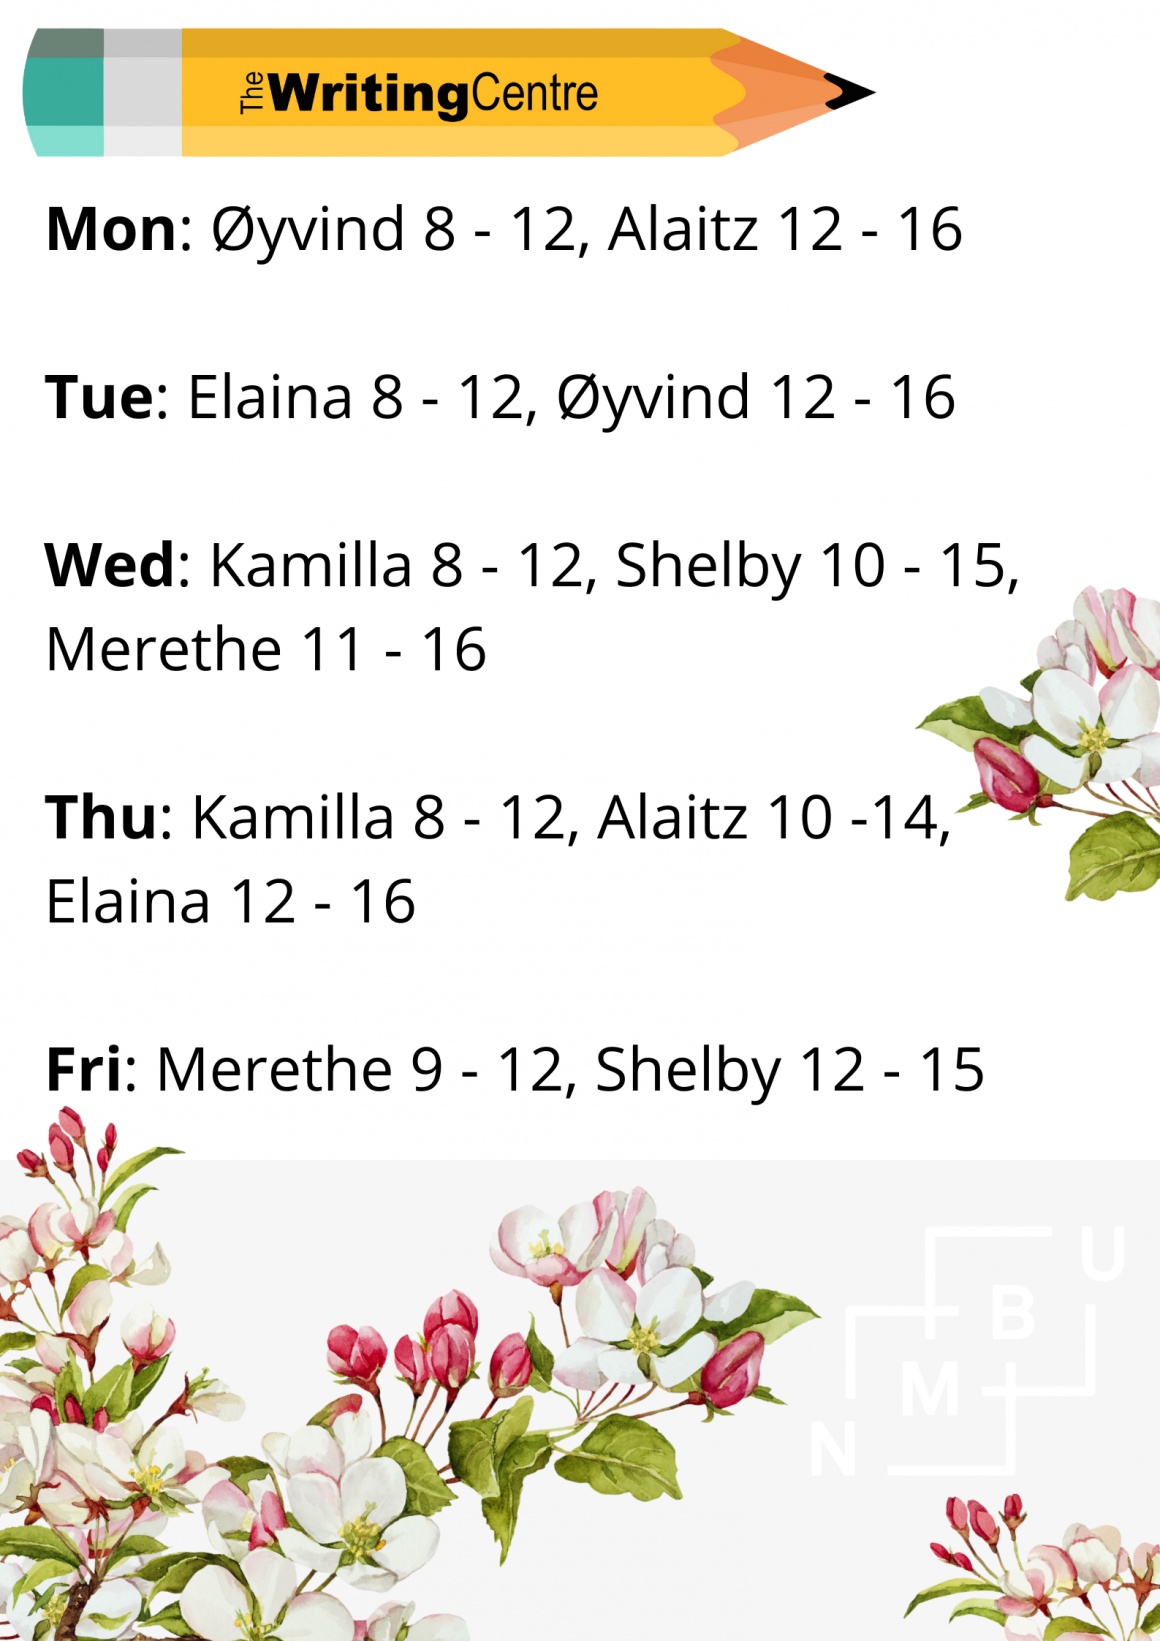 Spring working schedule